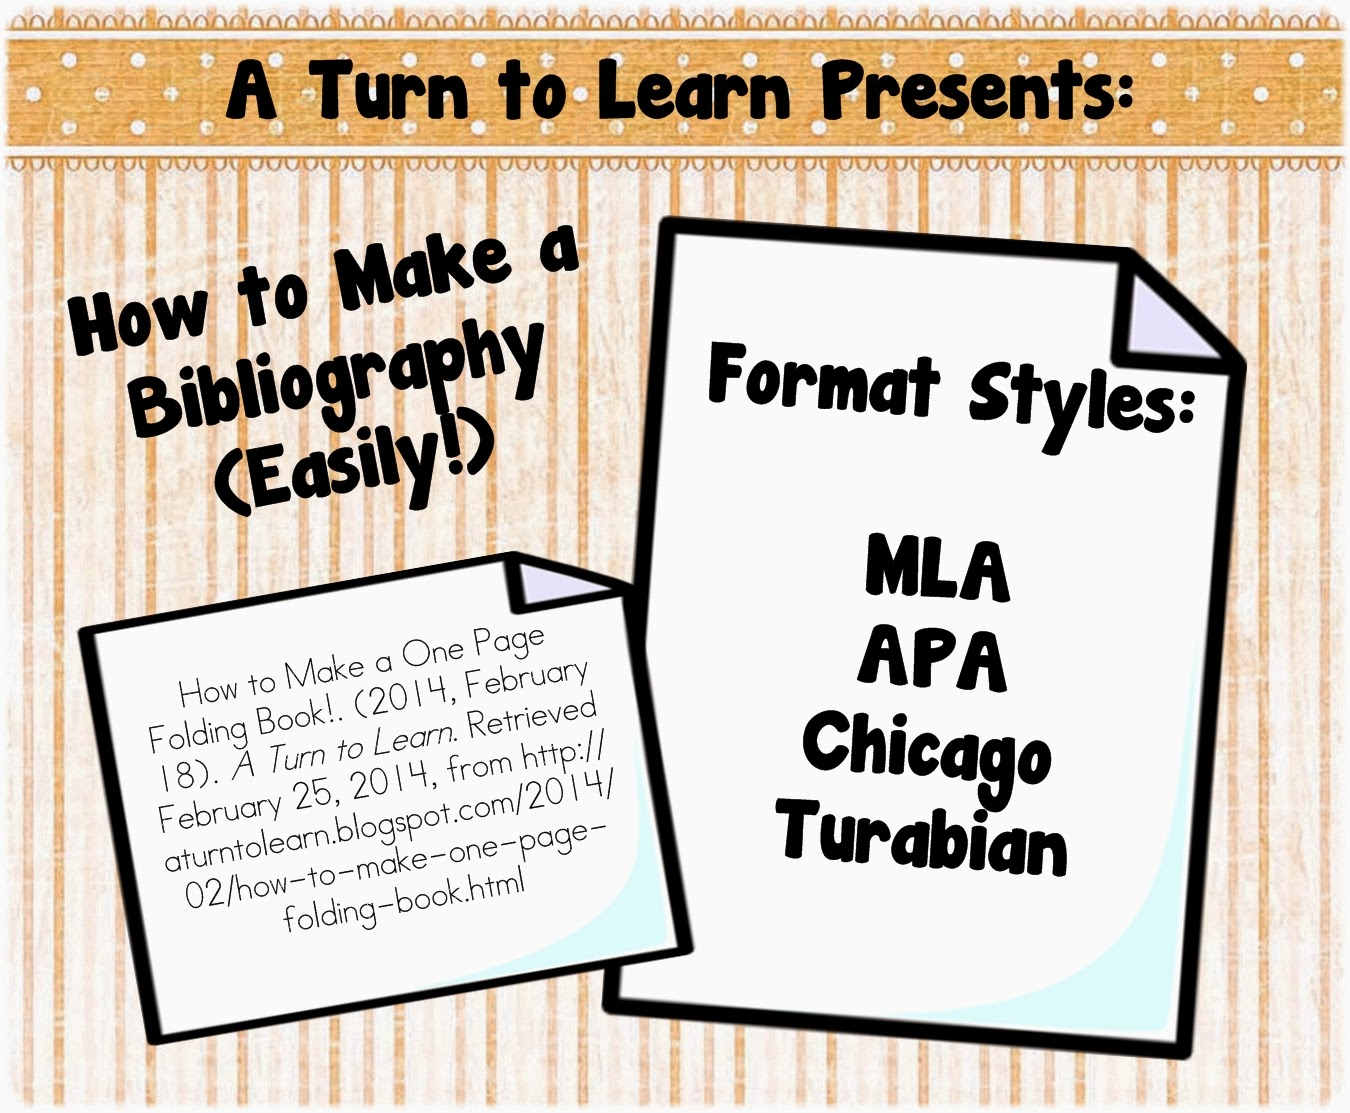 How To Make A Bibliography (easily!) A Turn To Learn How To Cite